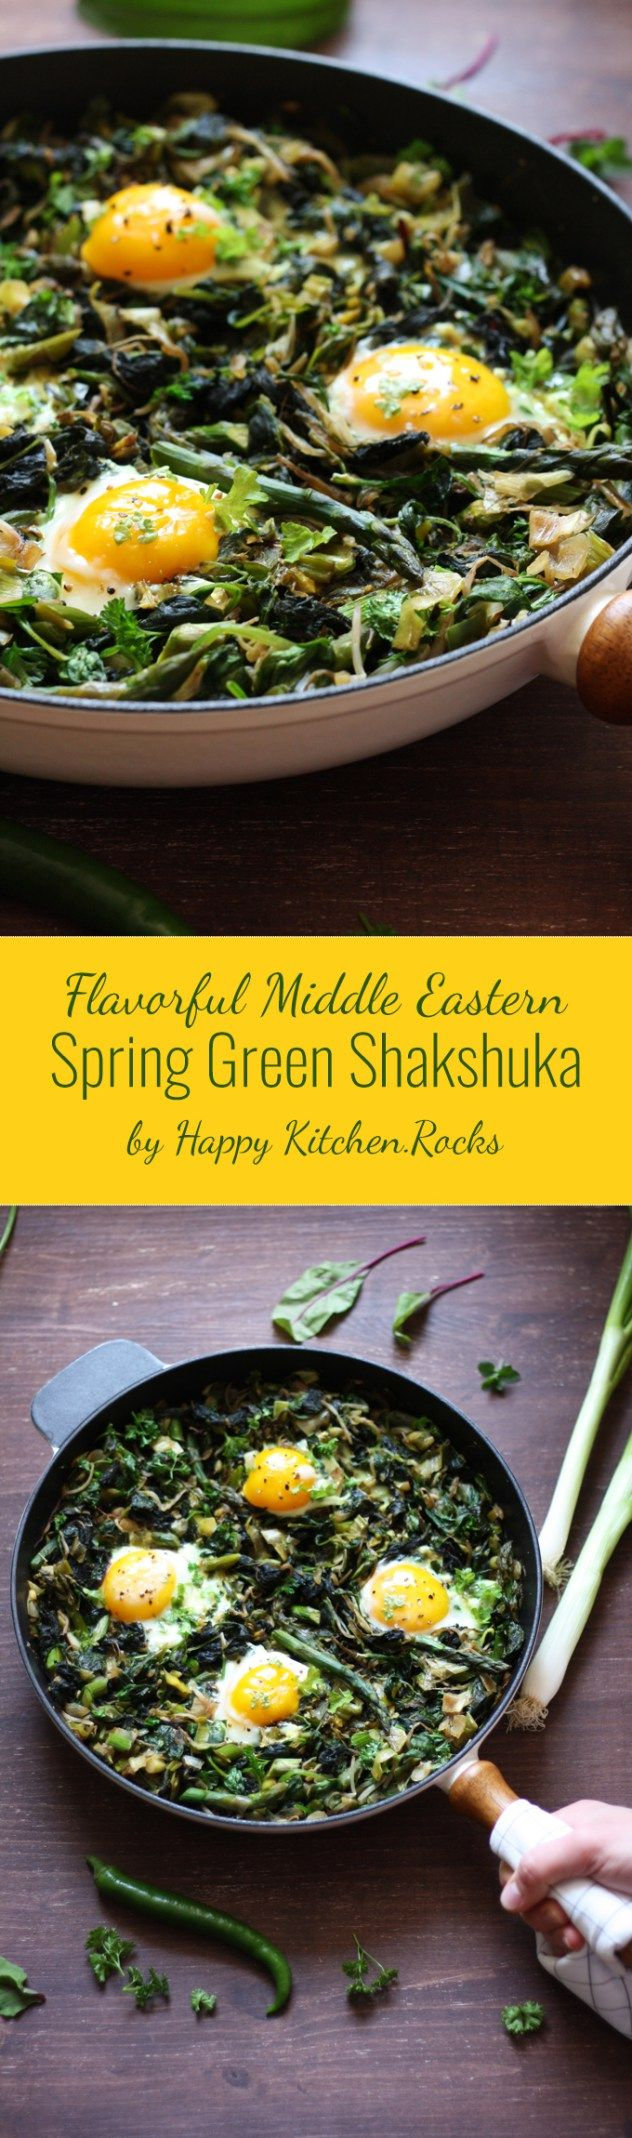 Spring Green Shakshuka is a versatile gluten-free vegetarian one-pot breakfast (or dinner) meal packed with nutrients and vitamins! Recipe ready in less than 30 minutes.